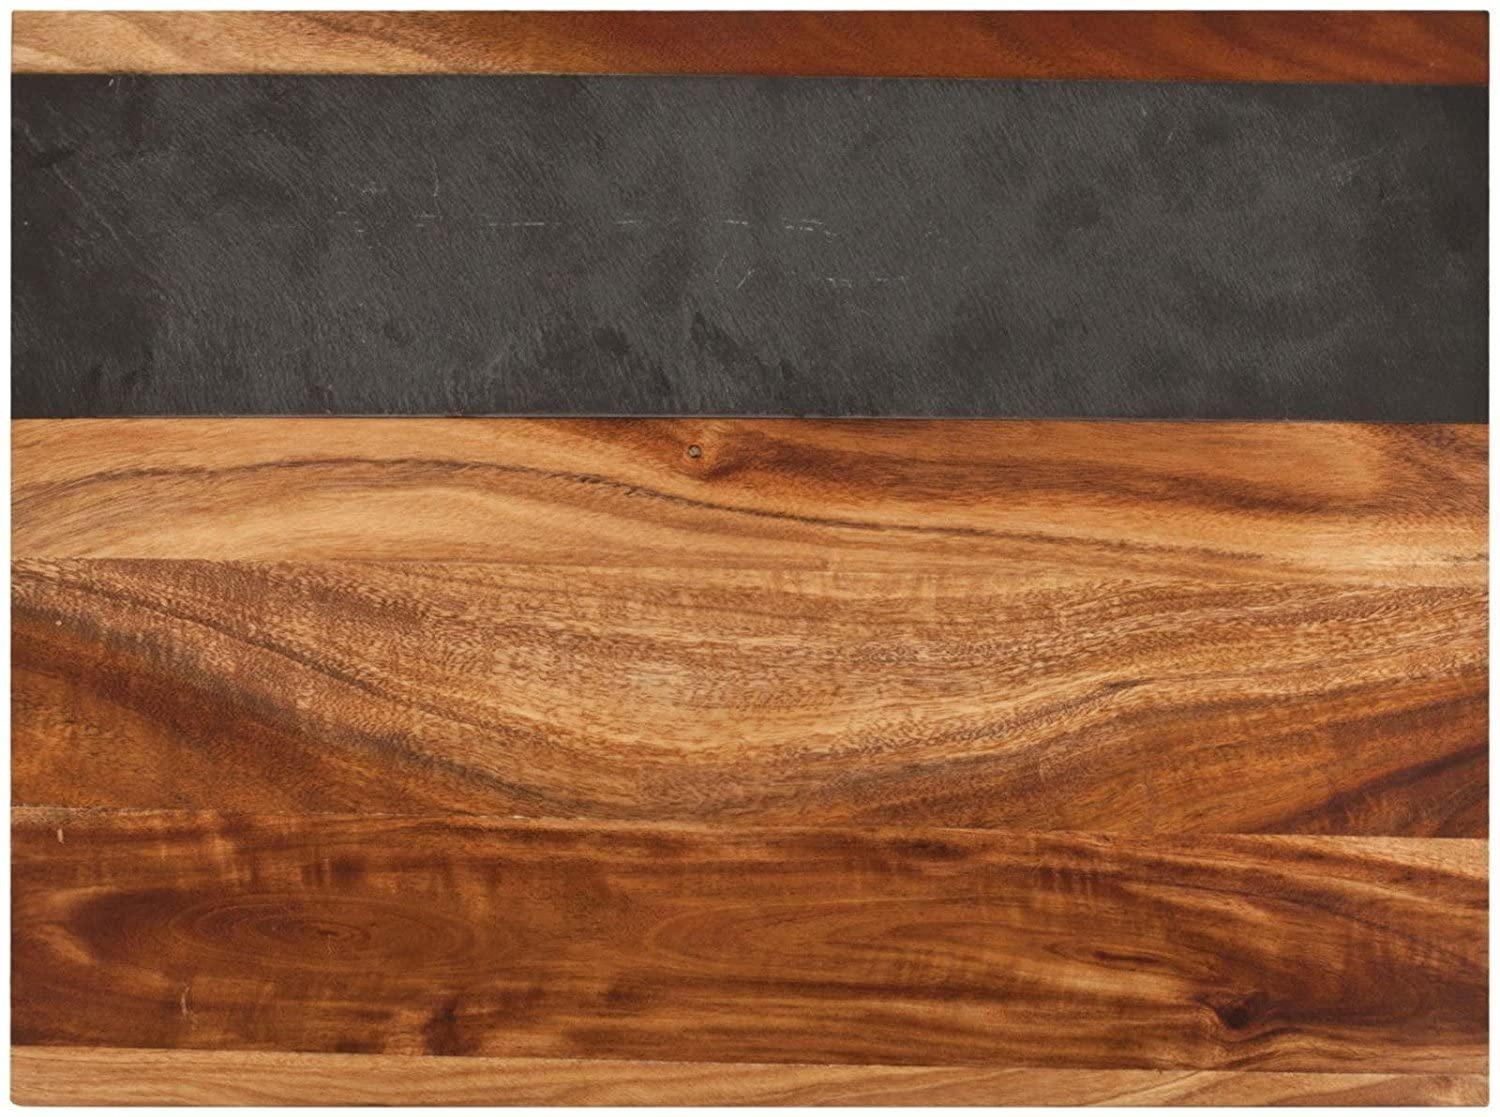 Rustic Farmhouse Acacia Wood and Slate Cheese Board by Twine – (17.7 x 10.2 x 1 in, comes with chalk)